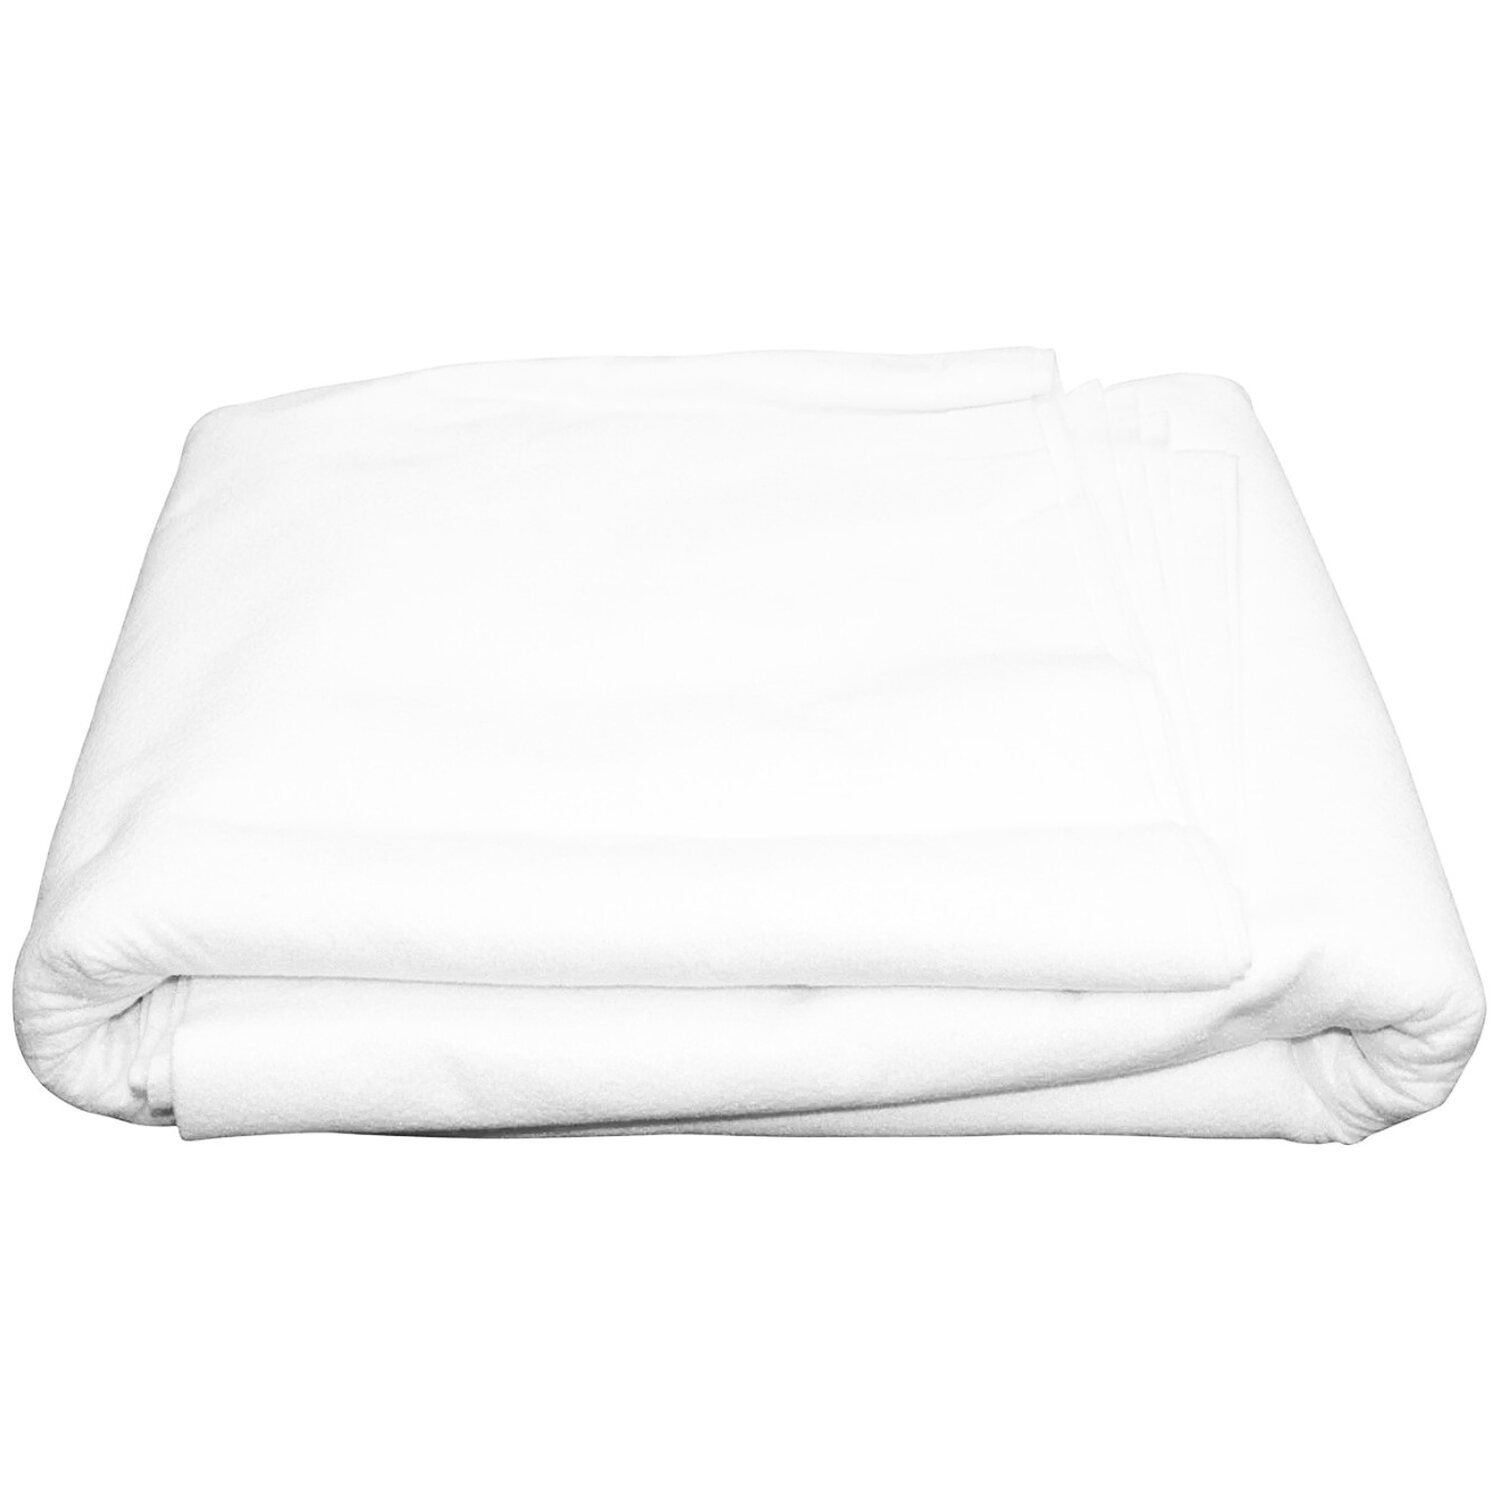 Summer fun pool bodenschutzvlies standard f r 360 460 cm for Swimming pools bei obi